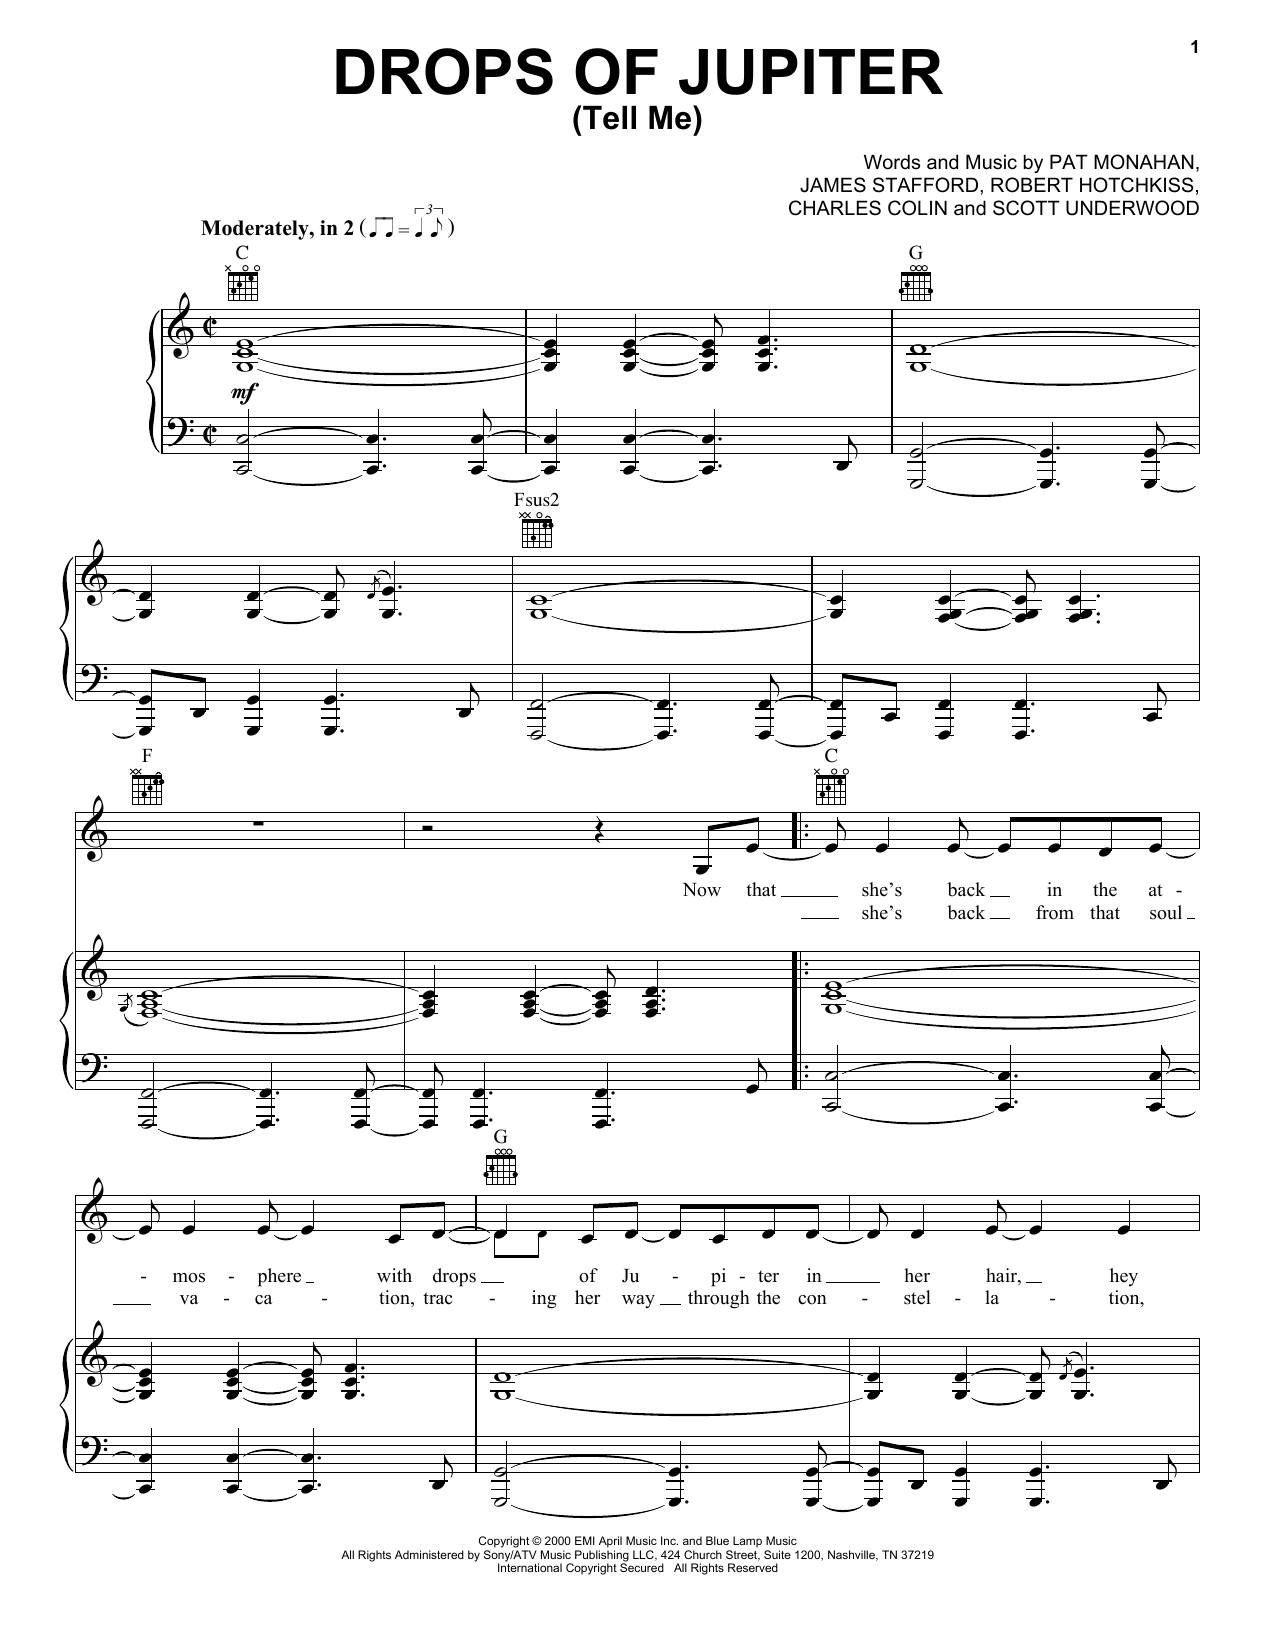 Drops Of Jupiter Chords Train Drops Of Jupiter Tell Me Sheet Music Notes Chords Download Printable Vpropg Sku 405260